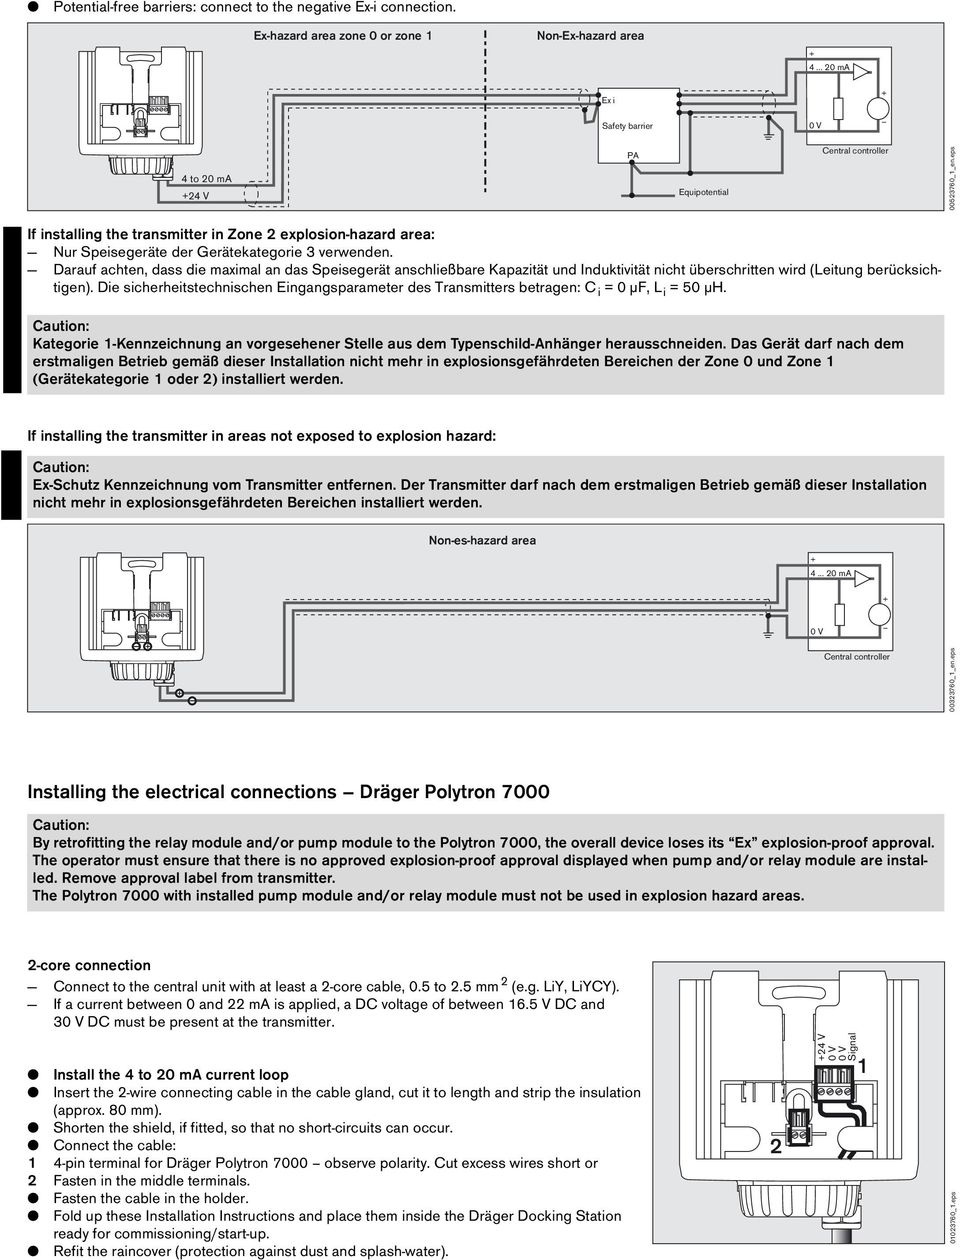 dräger polytron 7000 measuring unit installation instructions pdf